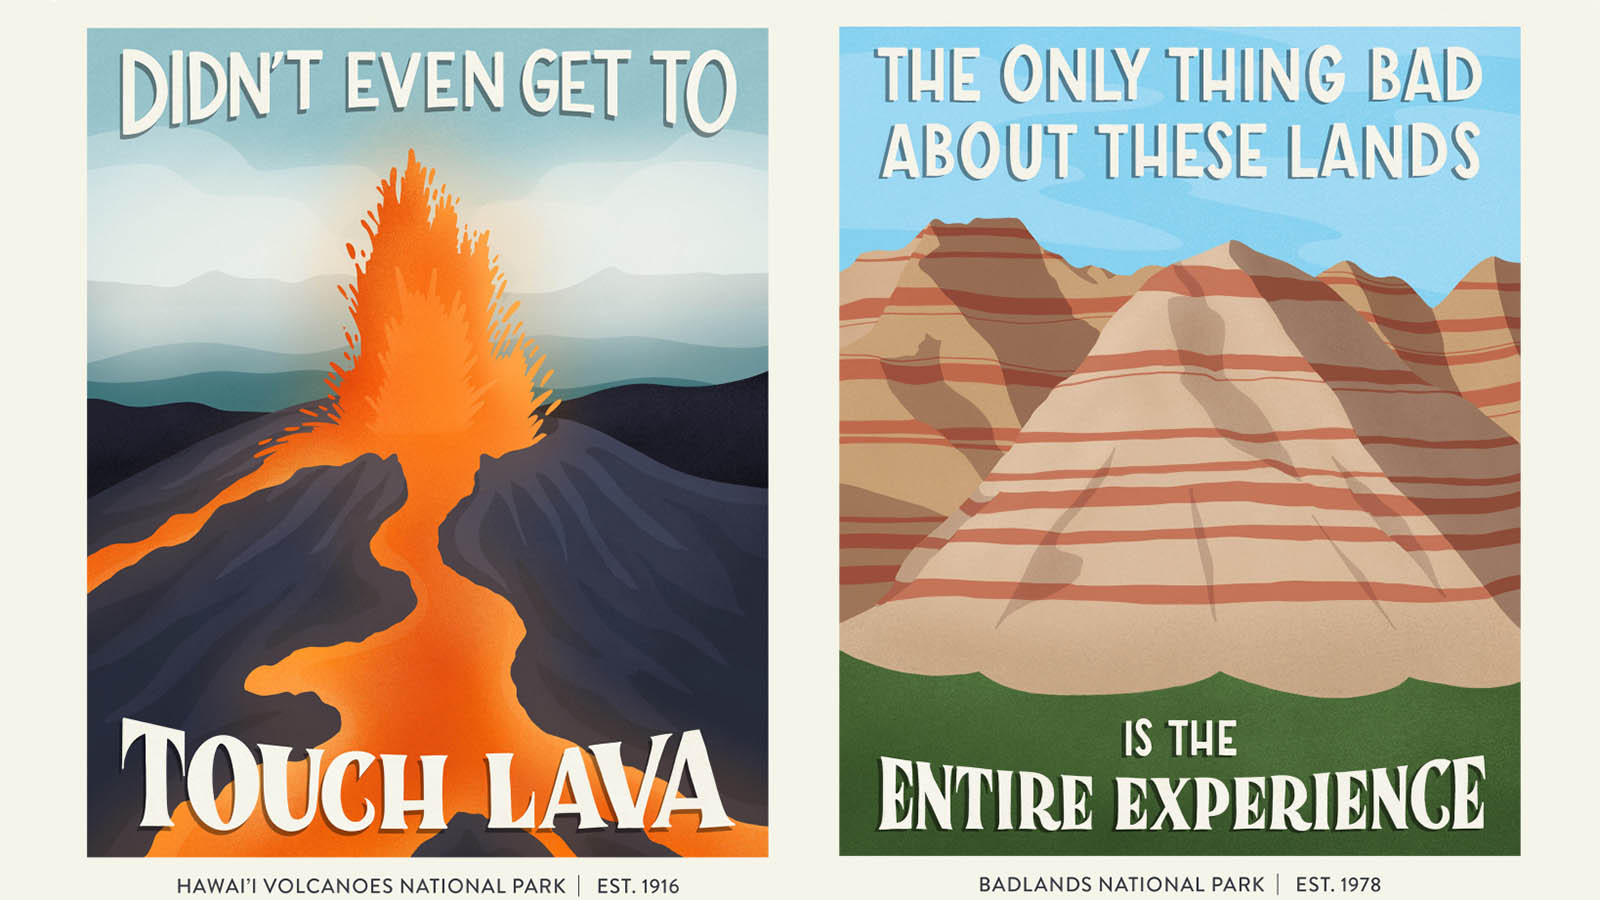 Hilarious Posters Poke Fun at Bad National Park Reviews